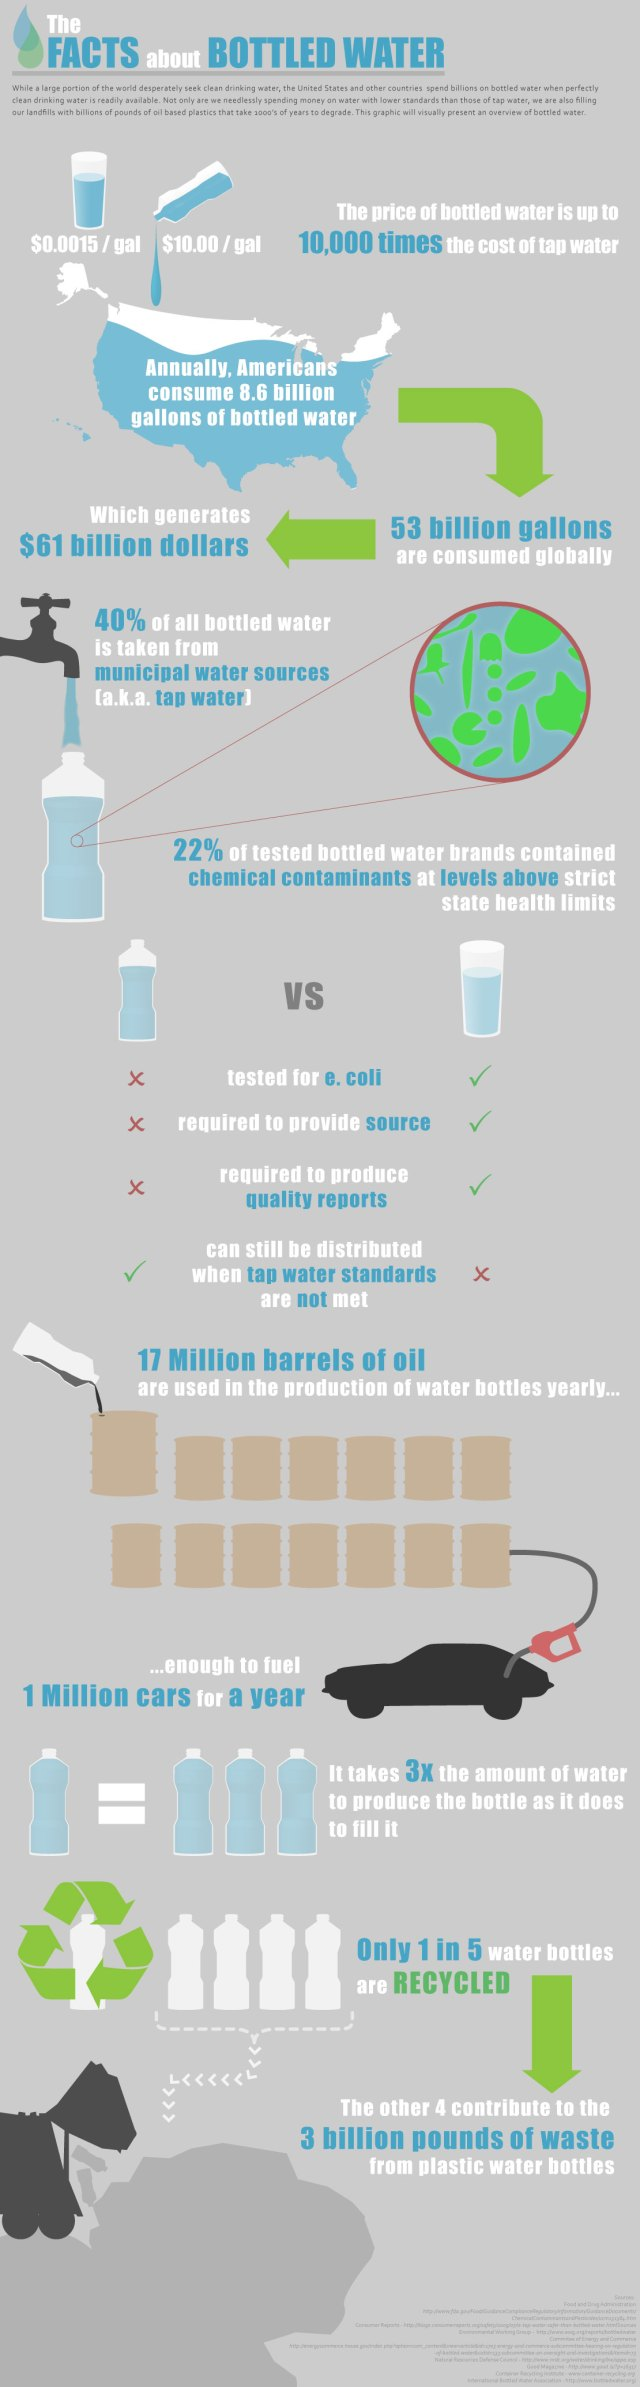 Is the environmental impact of plastic water bottles and recycling really all that bad? This chart tells the story.